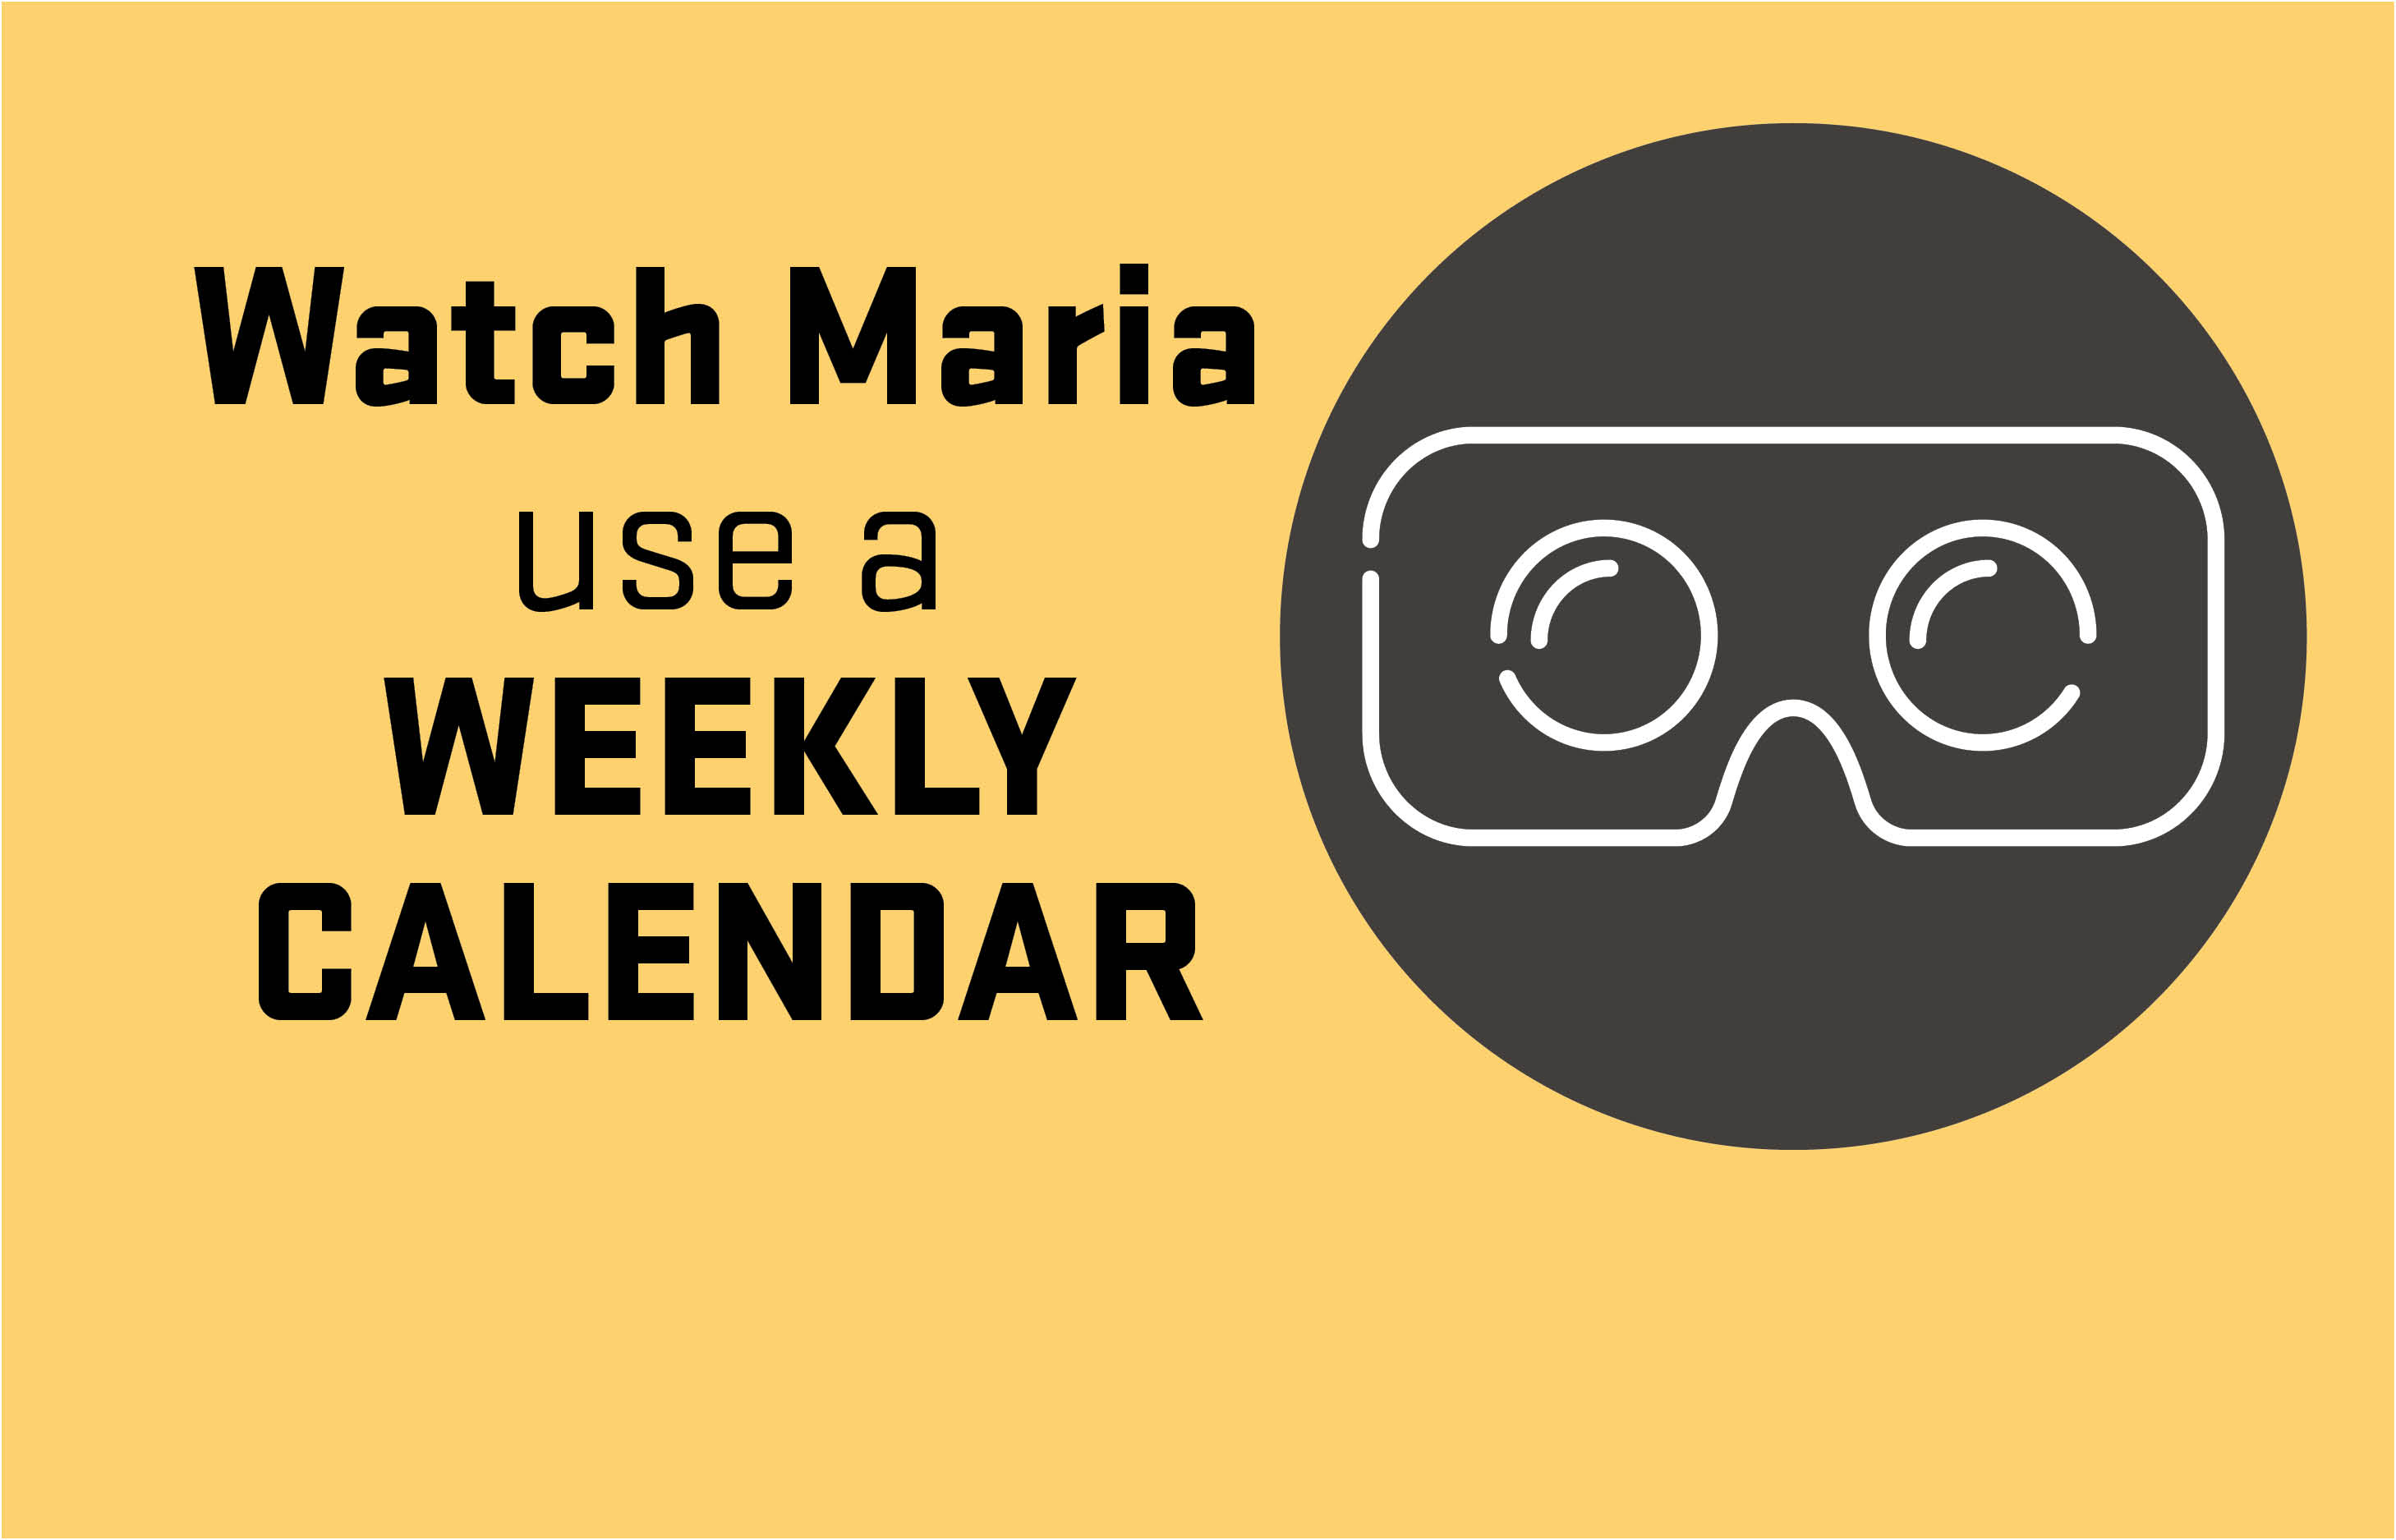 Watch Maria use a Weekly Calendar